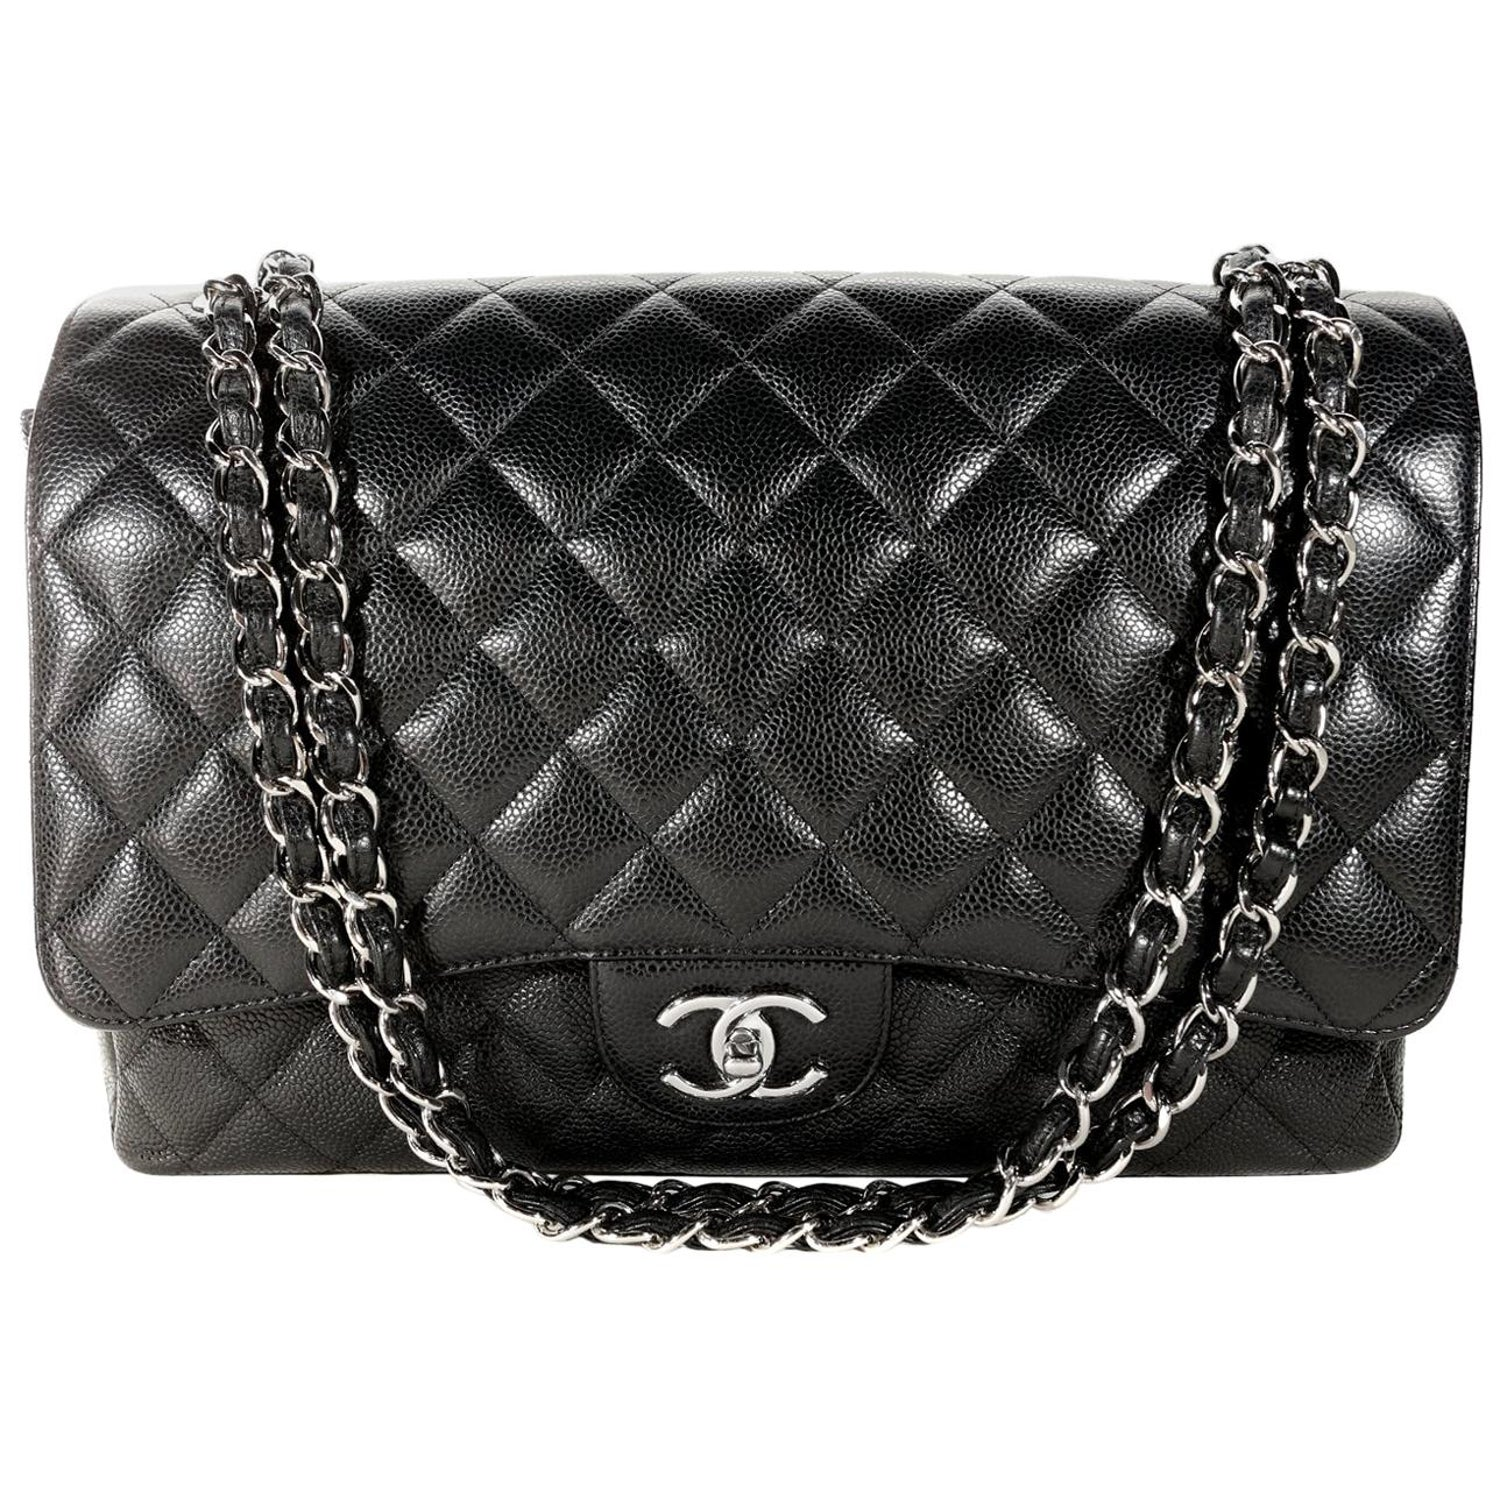 3e012d78f63e Chanel Black Caviar Maxi Double Flap Classic with SHW For Sale at 1stdibs